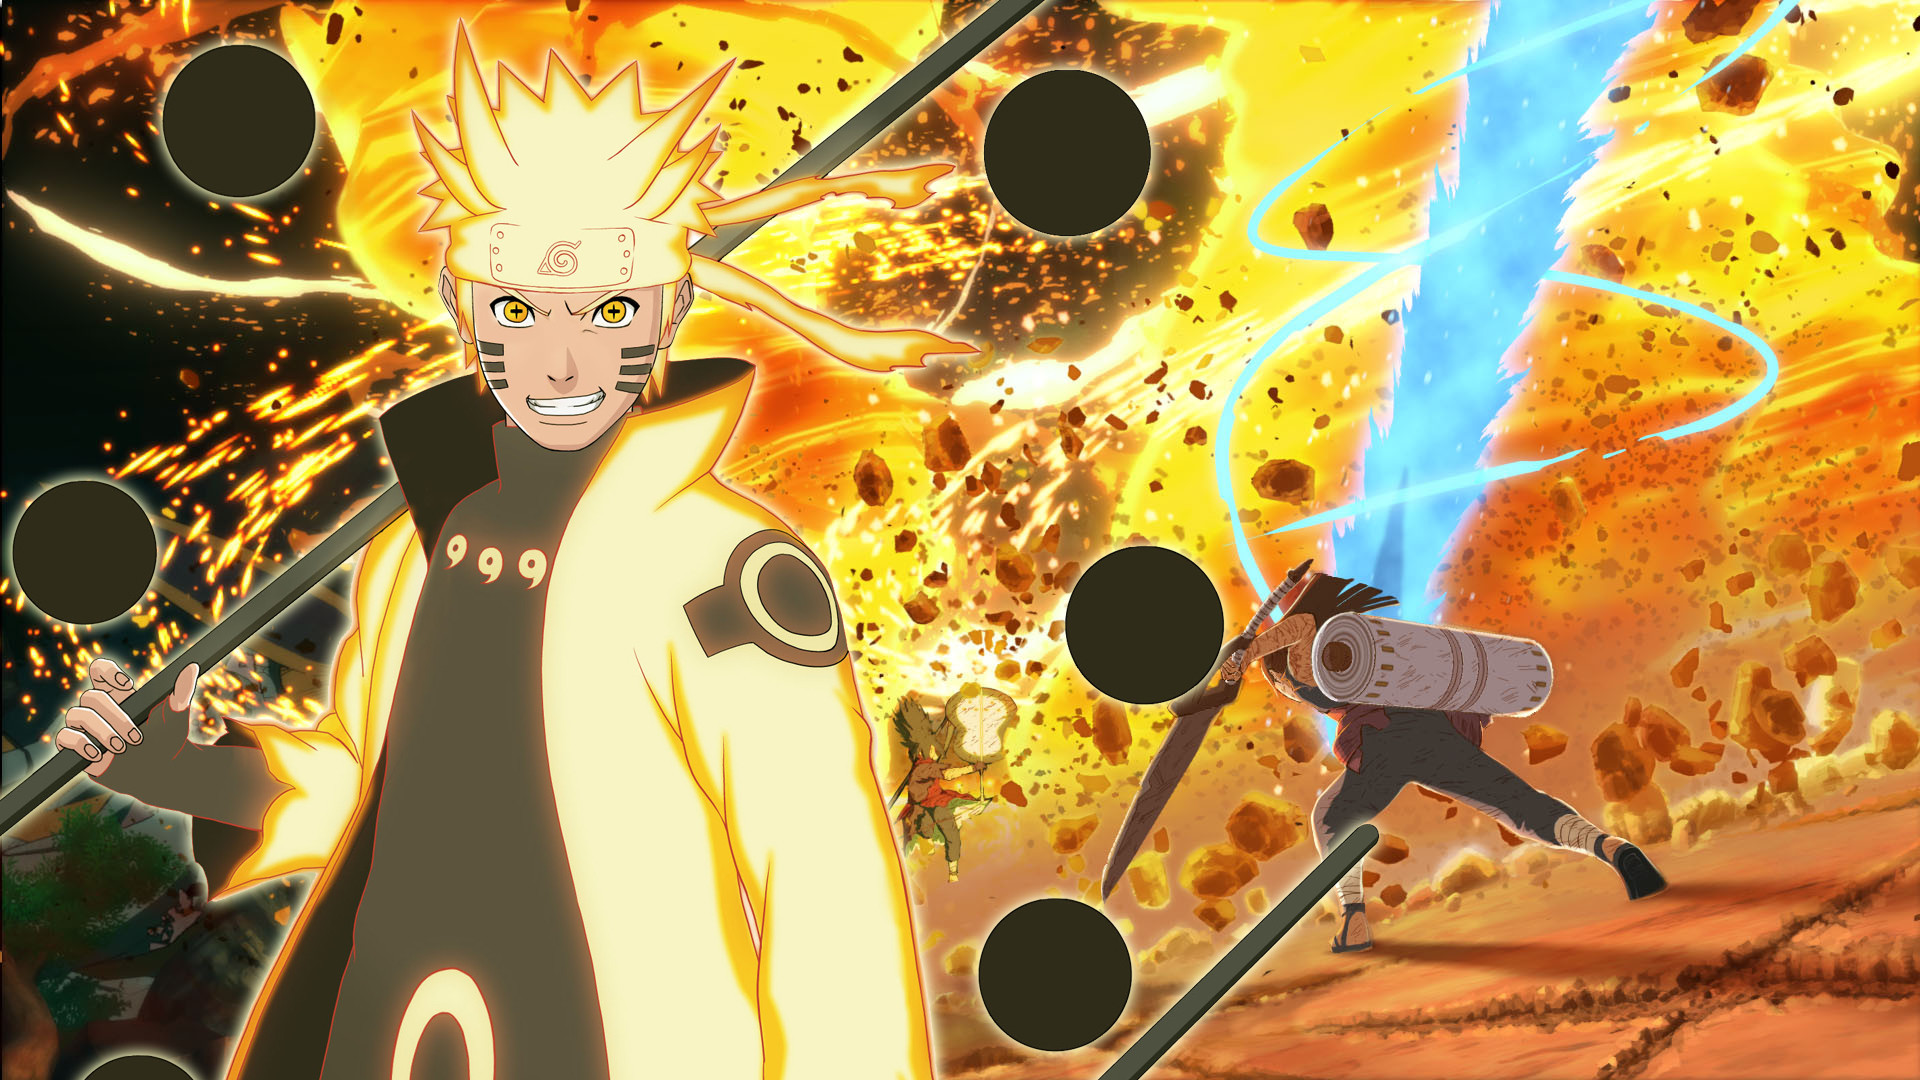 Best places to watch naruto shippuden